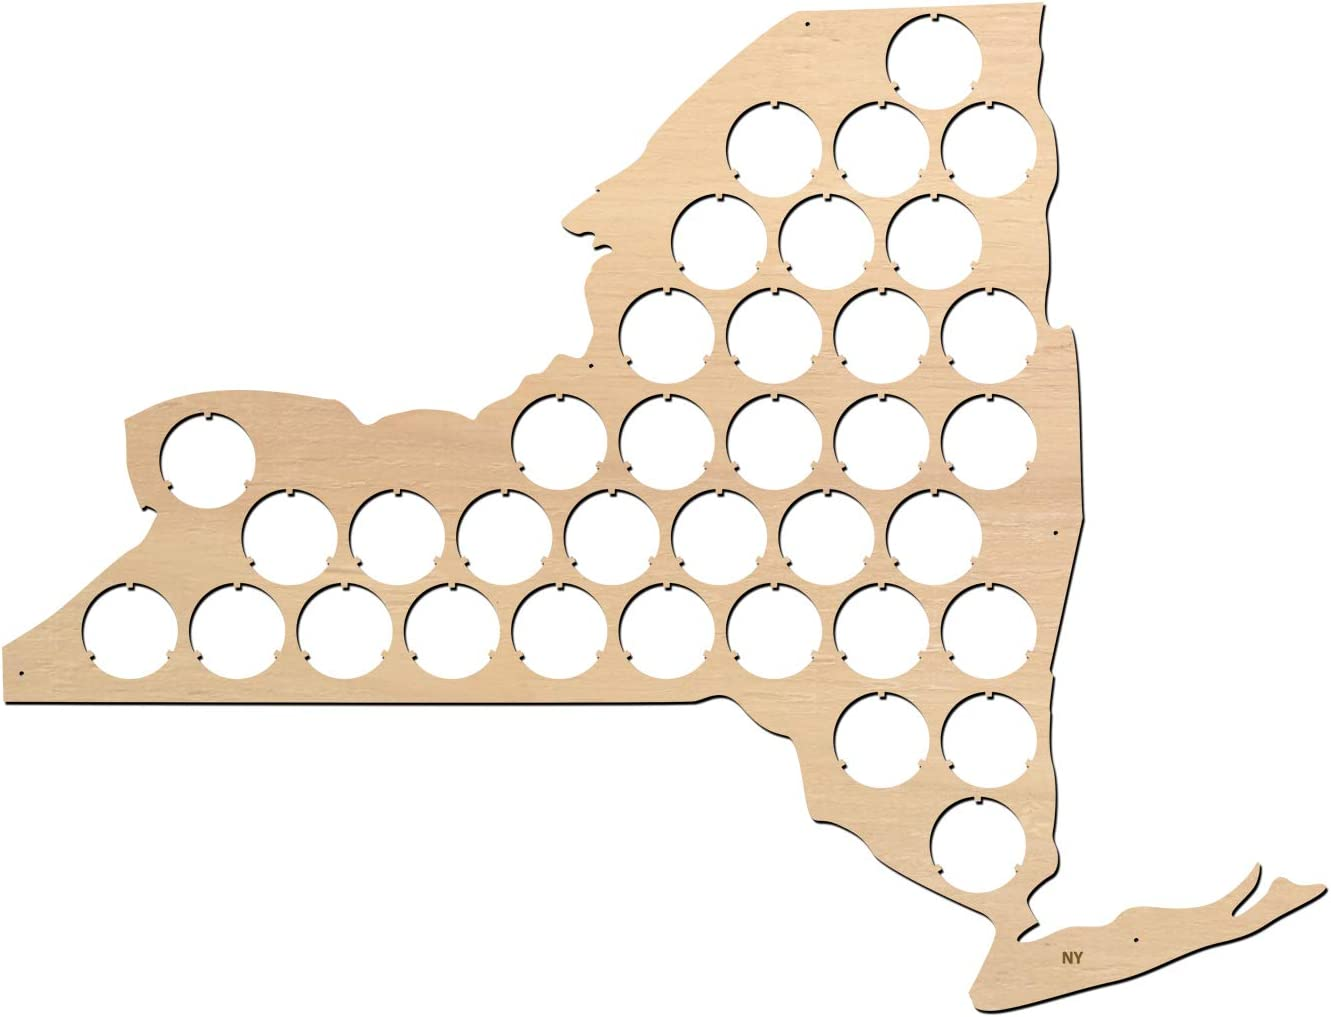 All States Beer Cap Map New York – 16x12,2 inches – 36 caps – NY Beer Cap Holder – Birch Plywood